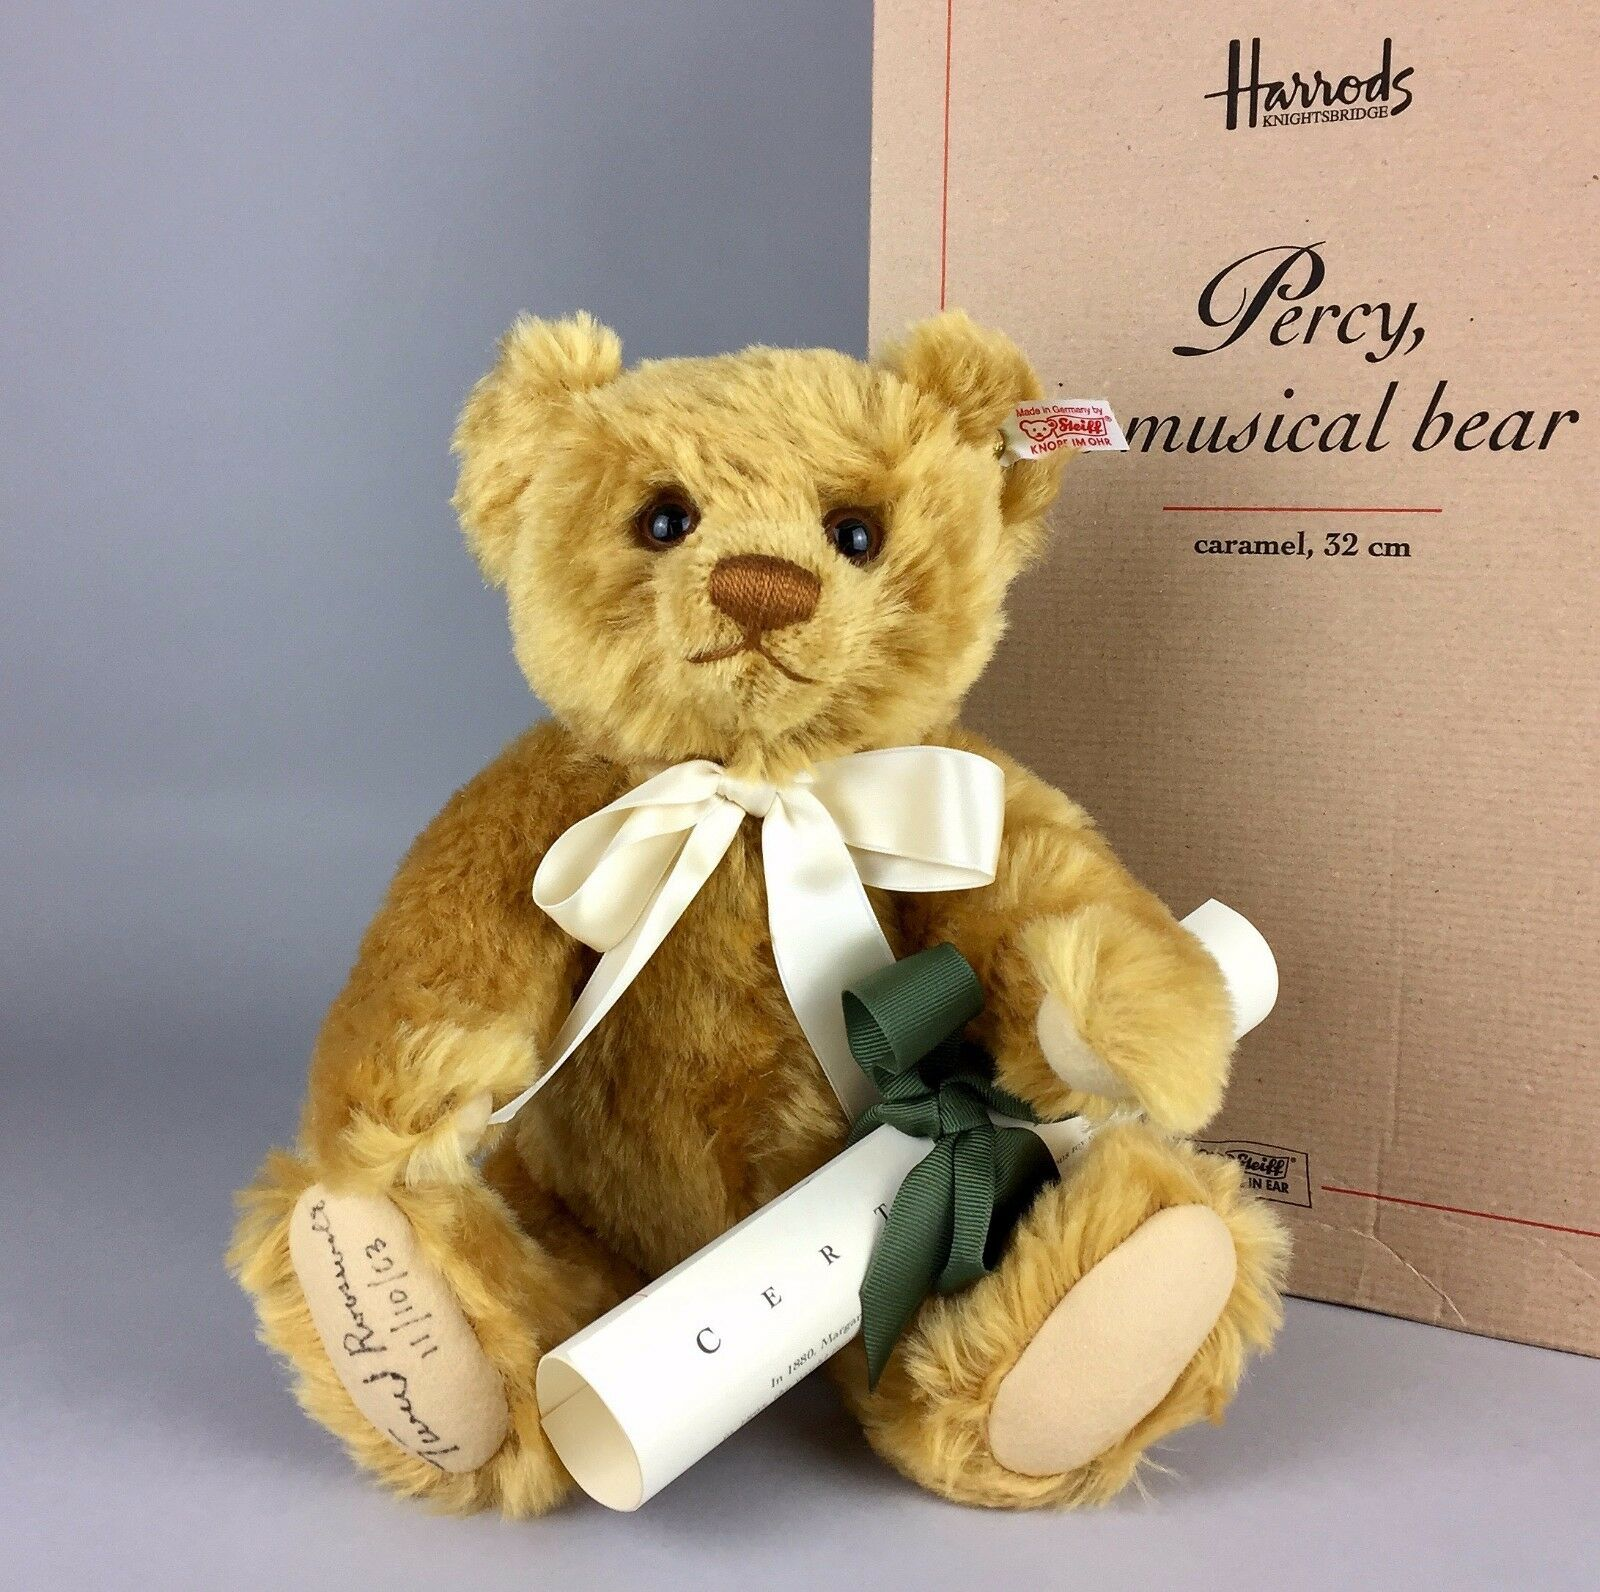 Tweed ROOSEVELT FIRMA STEIFF-PERCY-Ltd Ed 'Musicale Teddy Bear 661211-Boxed -